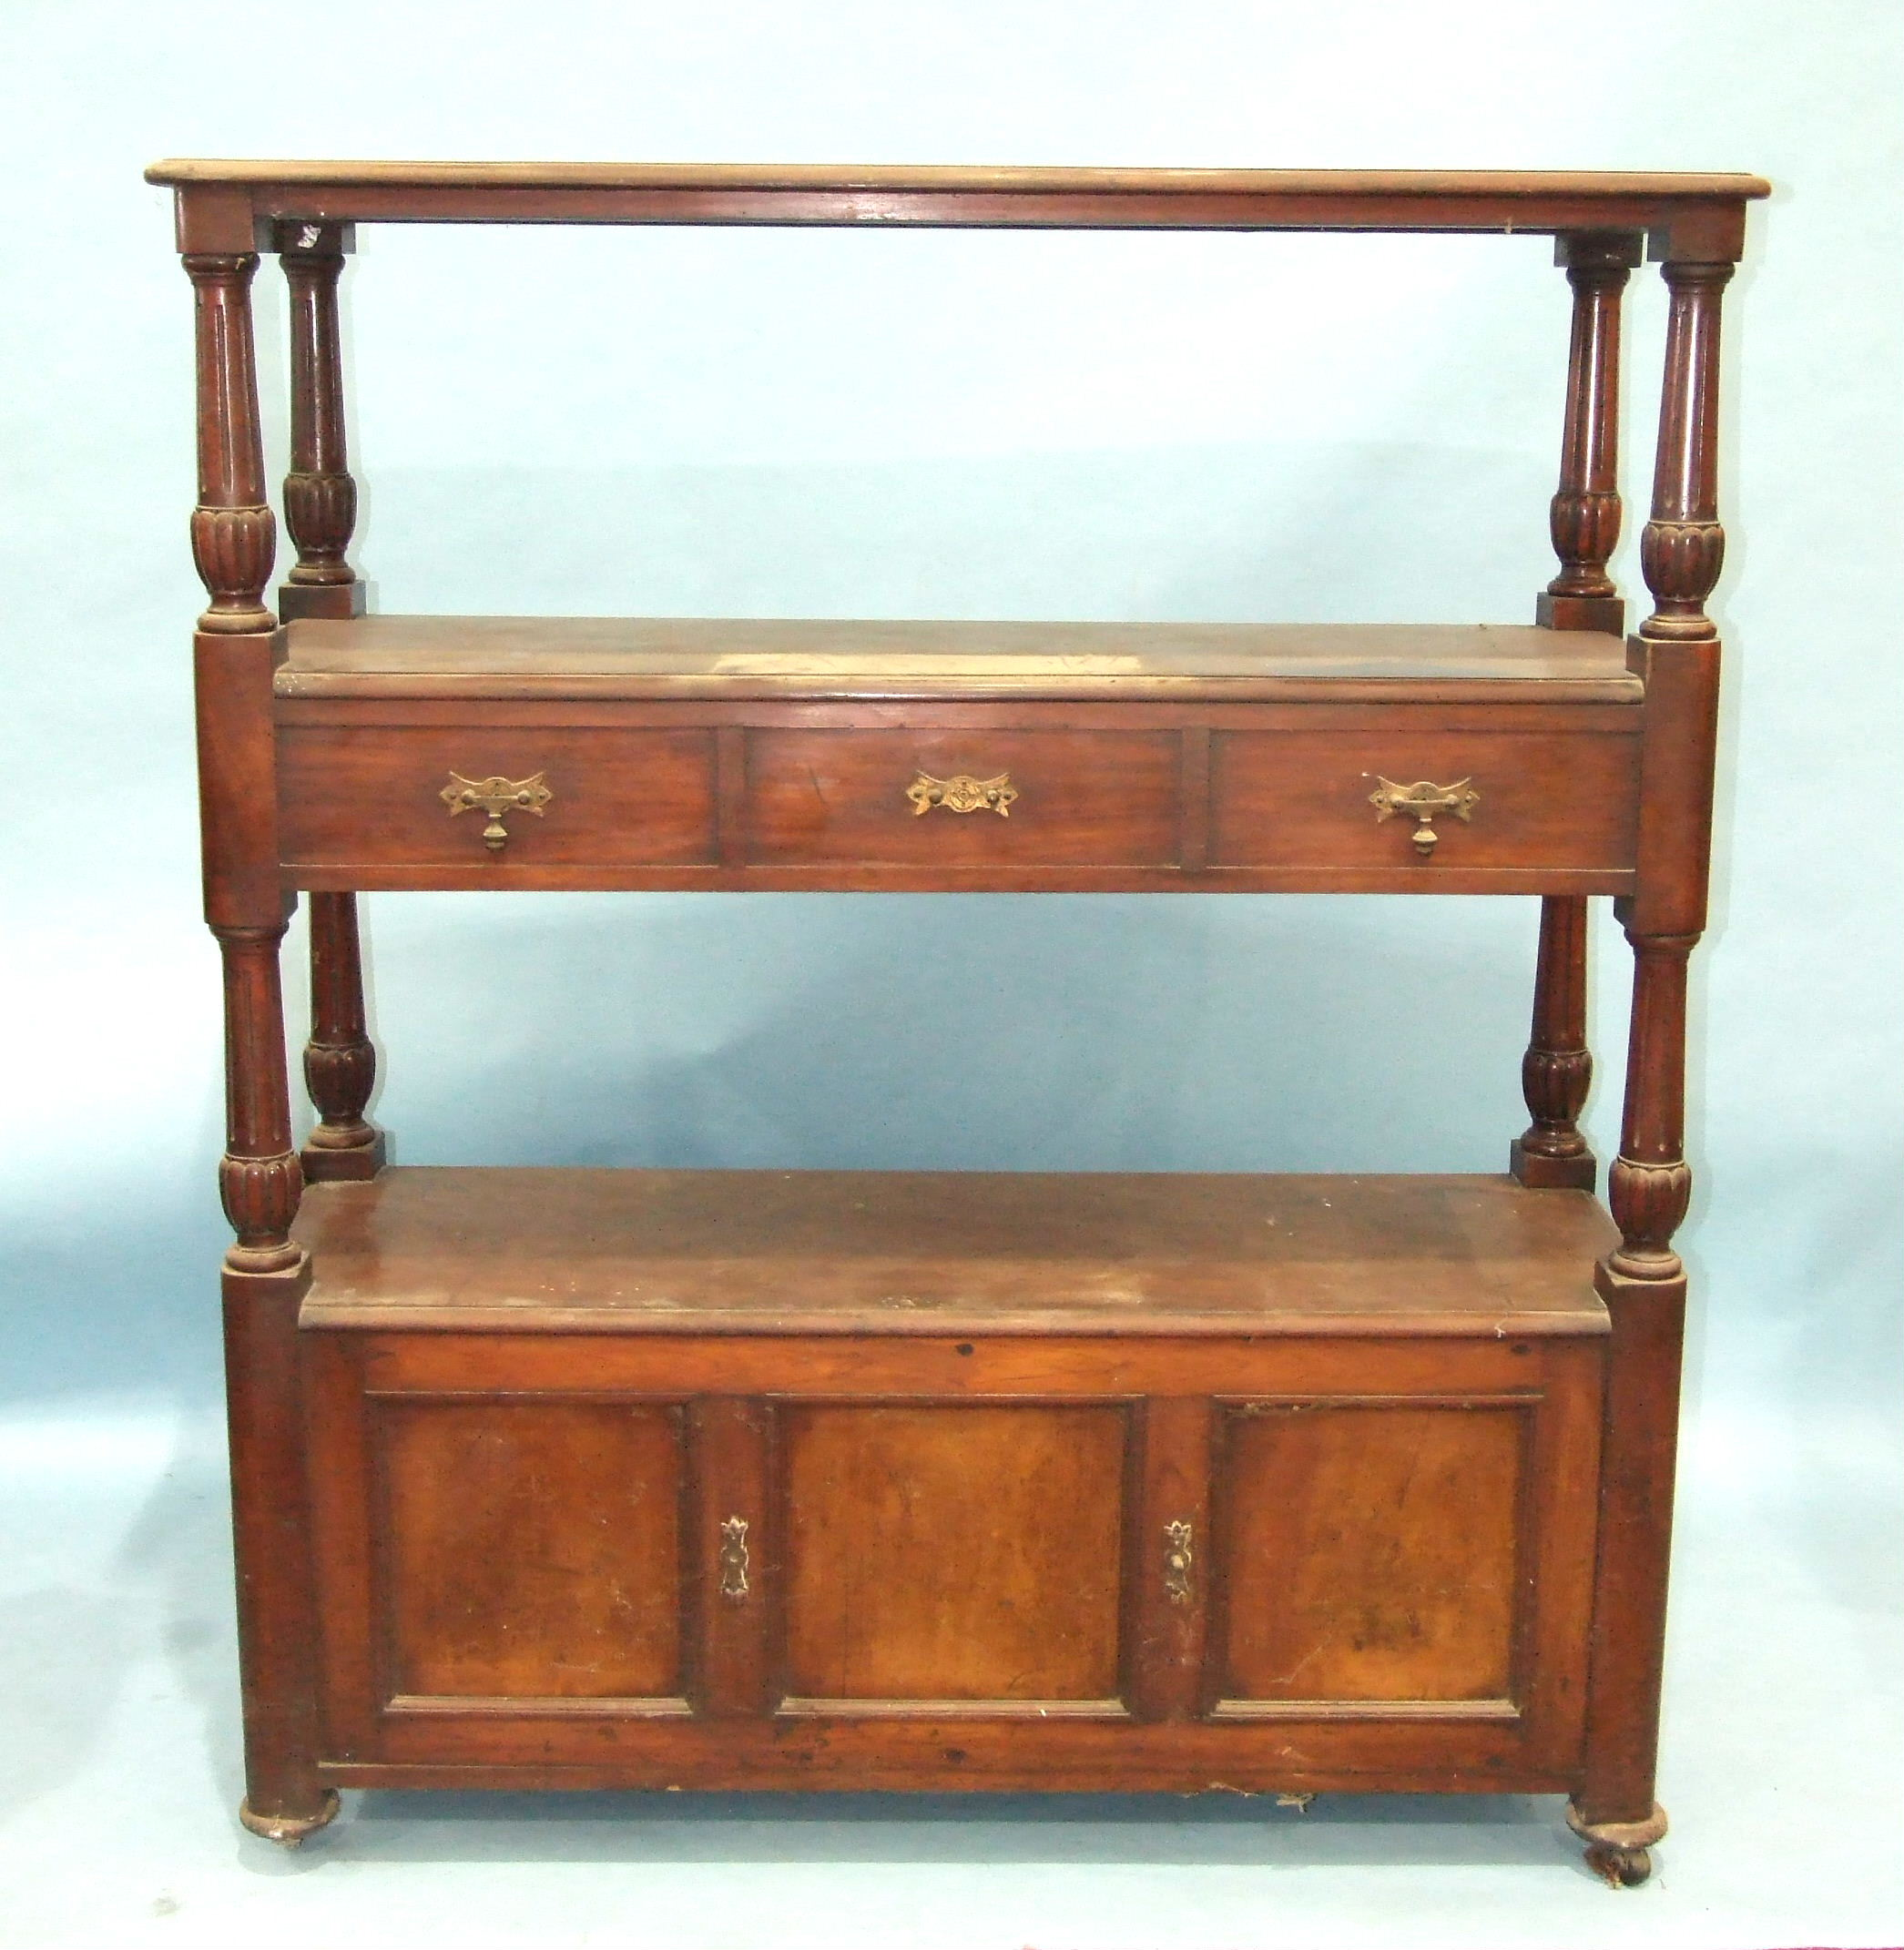 Lot 24 - A Victorian double-sided three-tier dumb waiter, having two centre drawers and three base